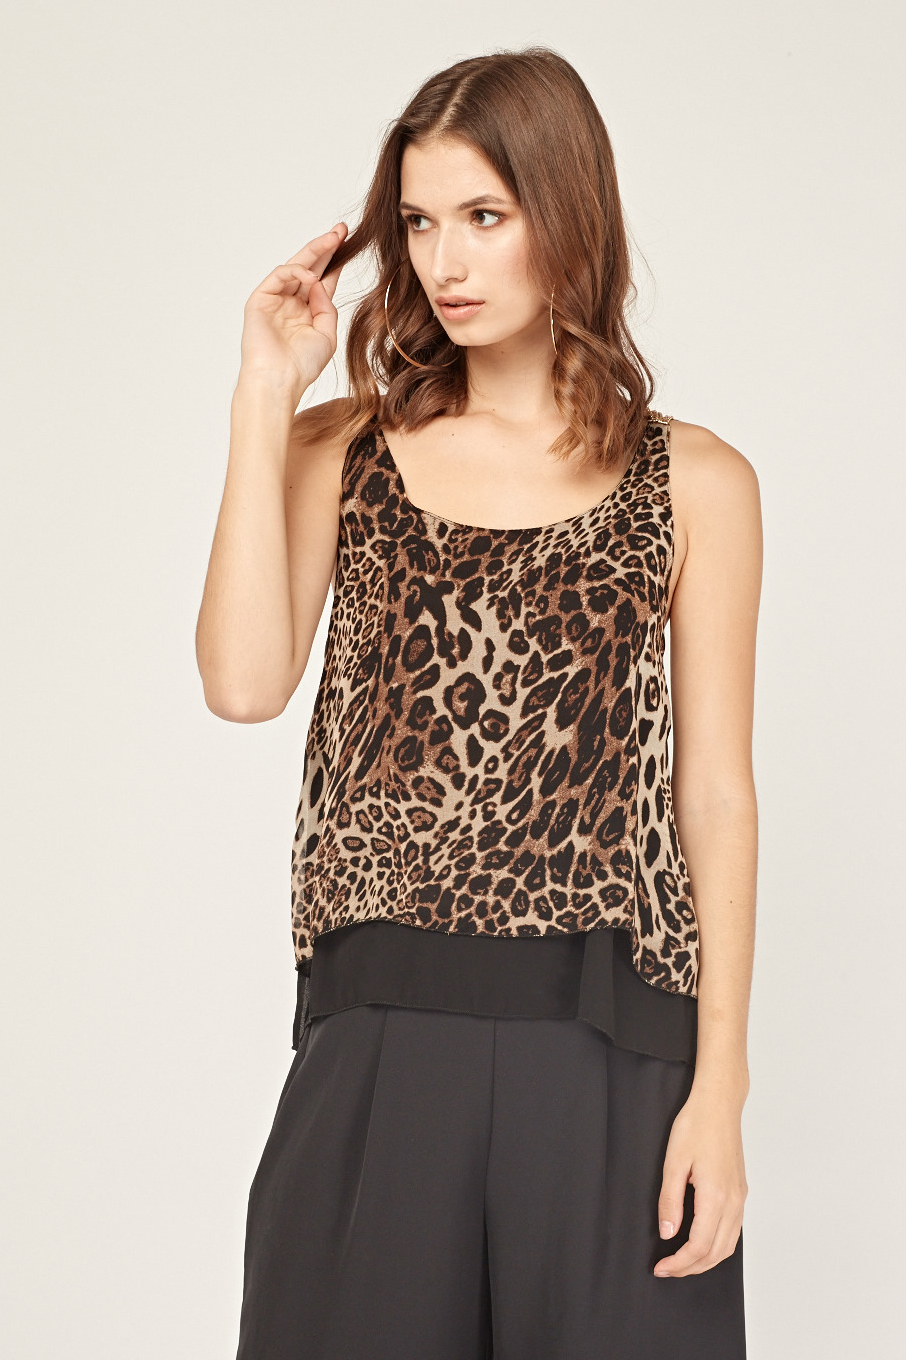 123c238101a8c3 Leopard Print Chained Back Top - Black Multi - Just £5